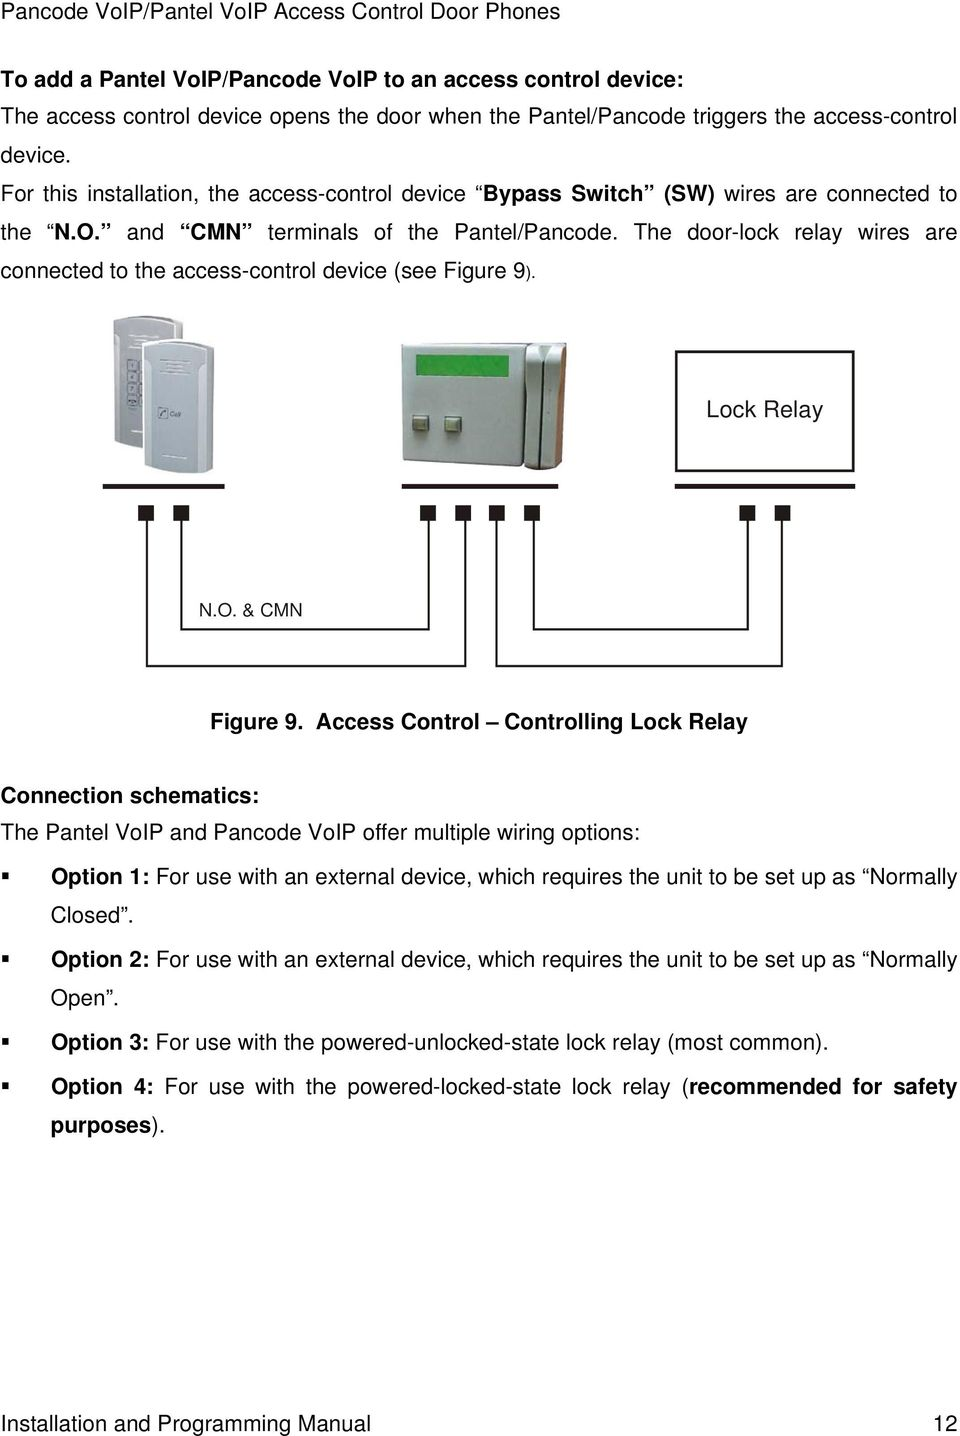 Access Control Relay Wiring. . Wiring Diagram on